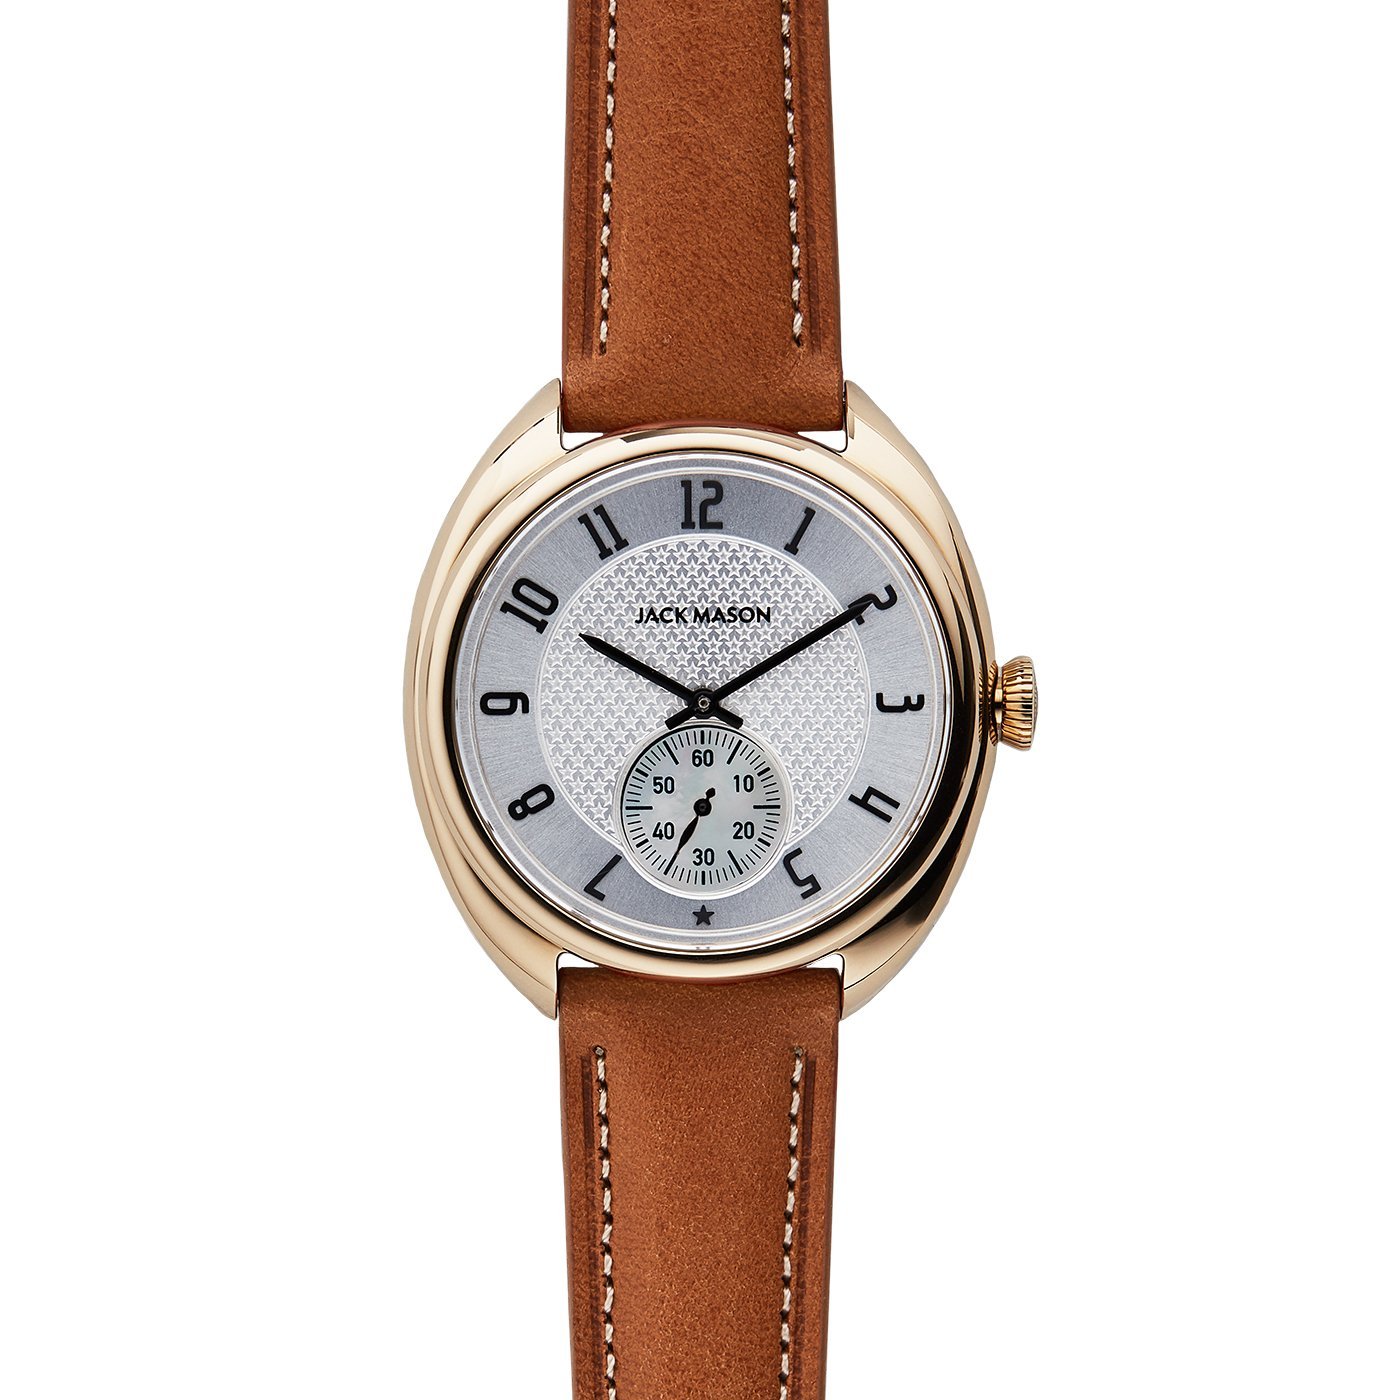 Jack Mason Issue No 1 Yellow Gold Sub Second White Dial Tan Leather Strap